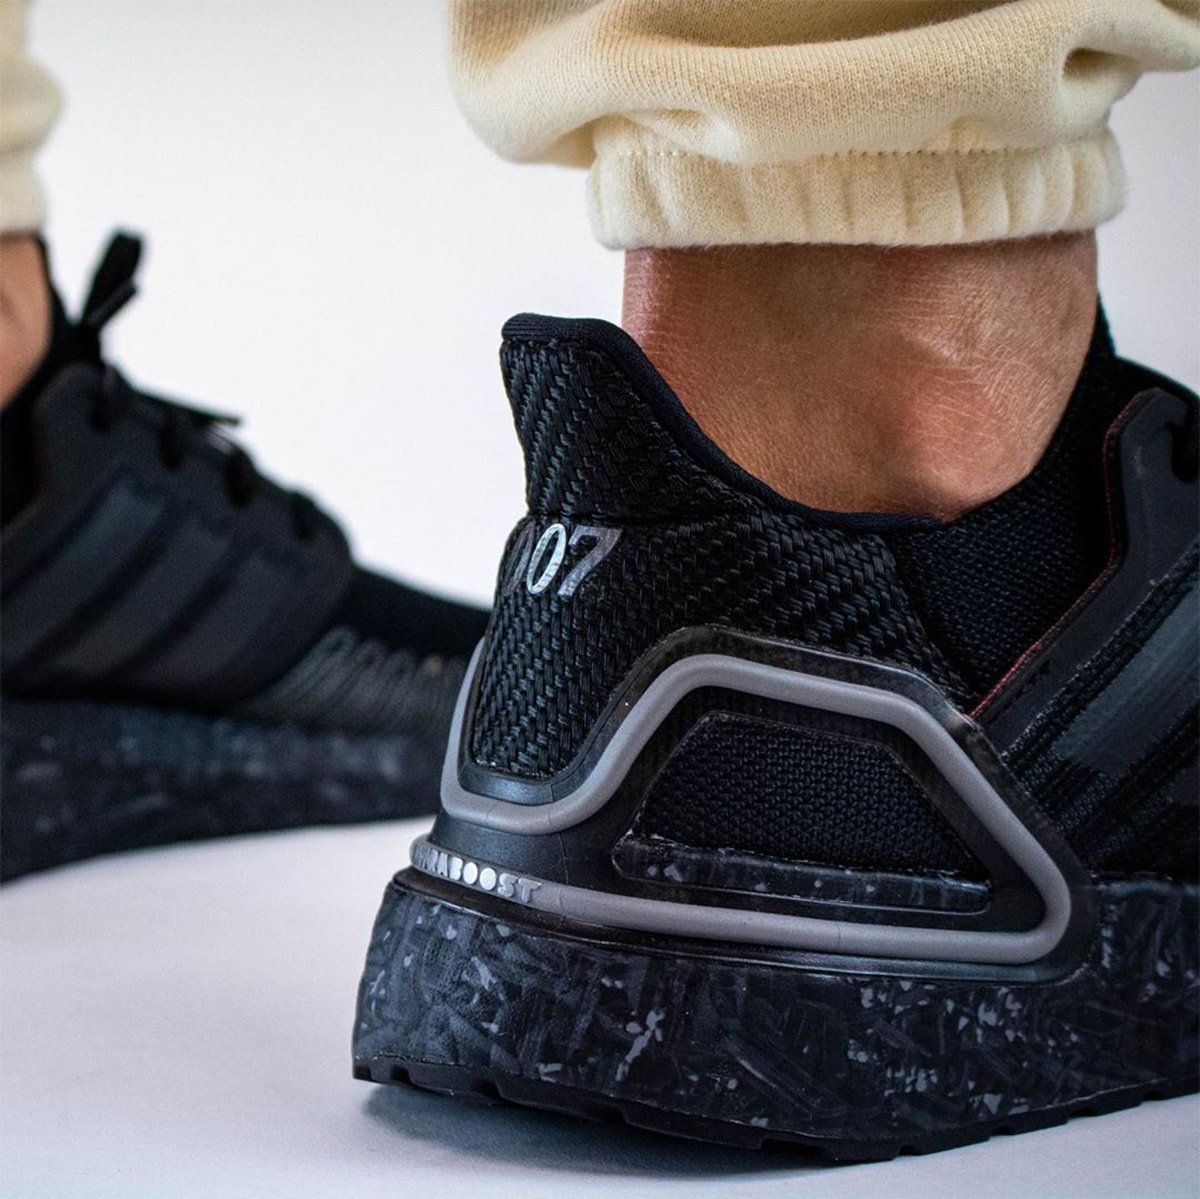 adidas ultra boost 20 james bond 007 no time to die